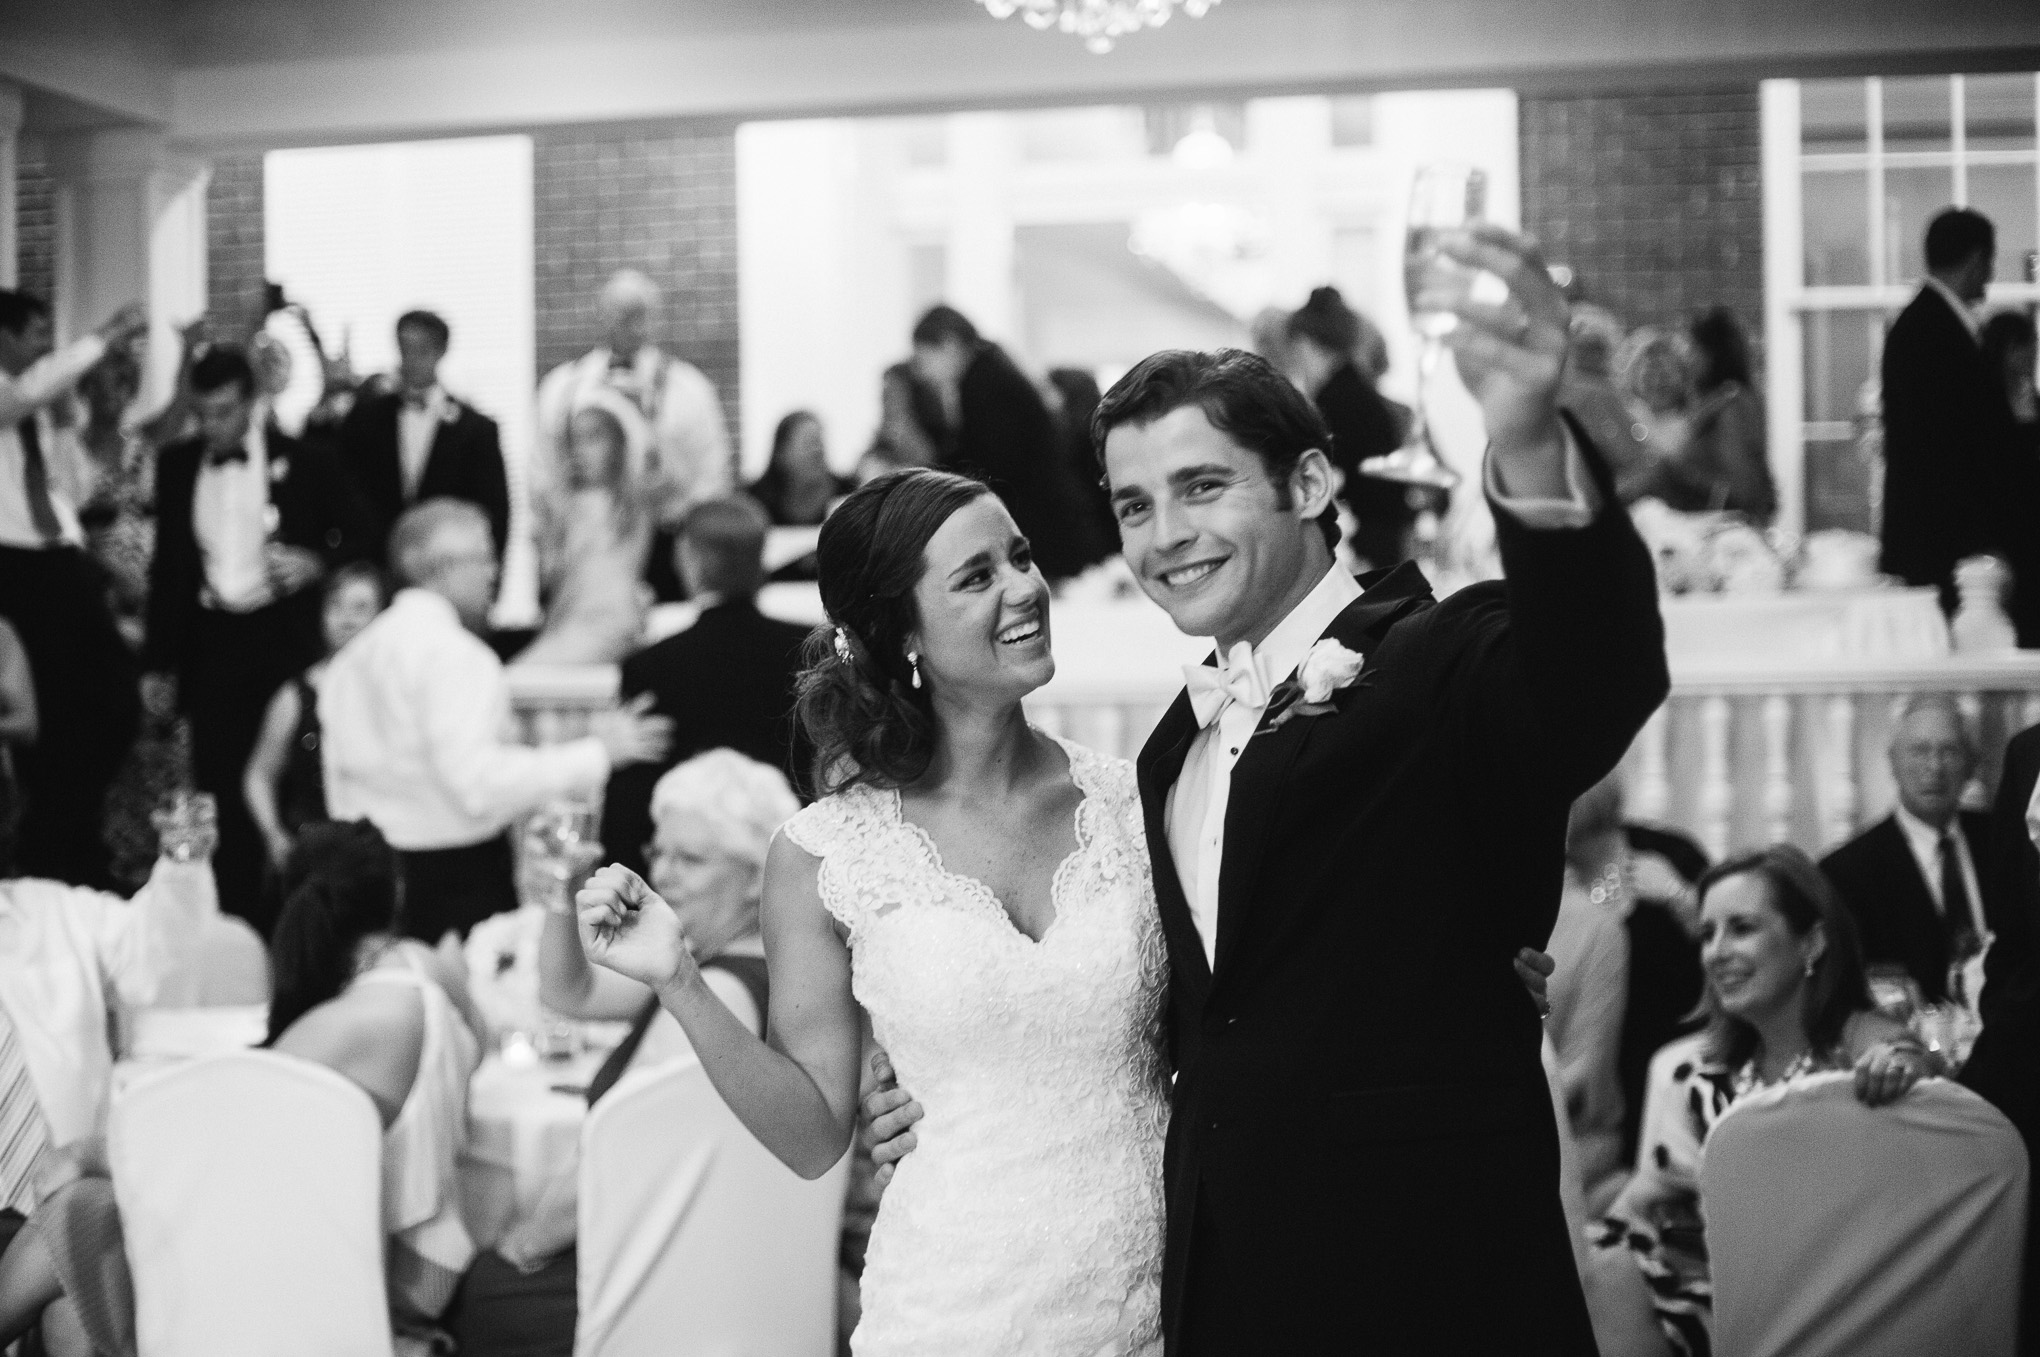 Celladora Wedding Photography | bride-groom-toast